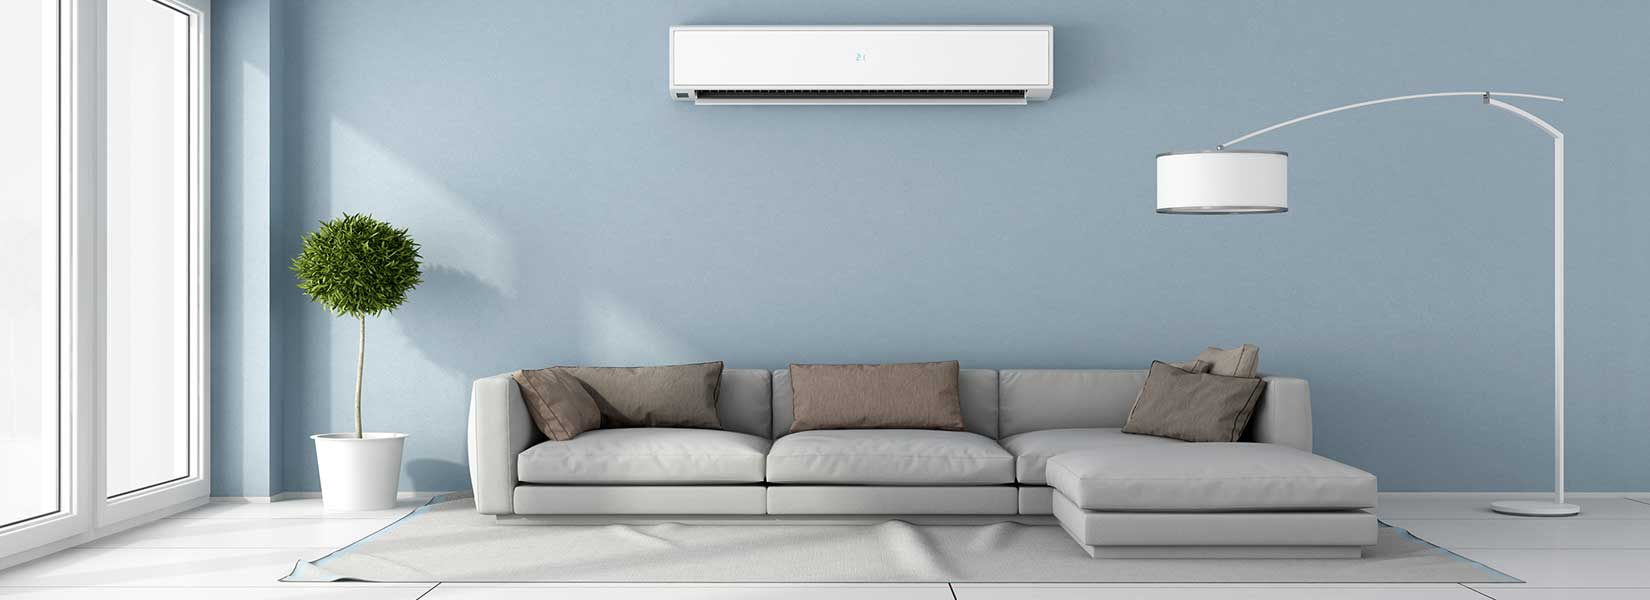 Common Air Conditioner Facts And Myths | Greenville HVAC Professionals